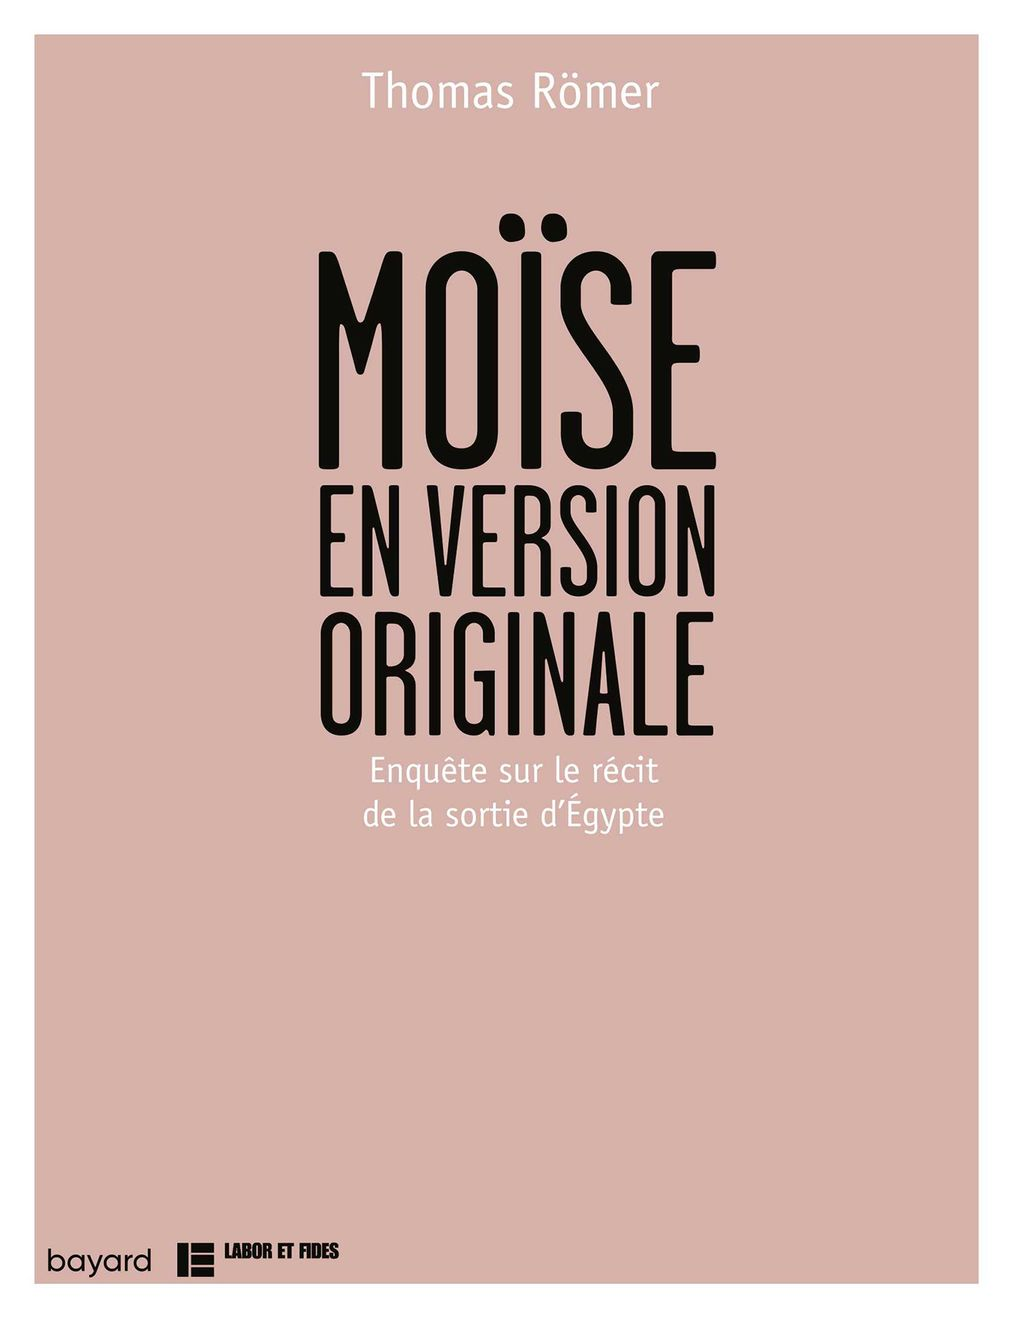 « Moïse en version originale » cover